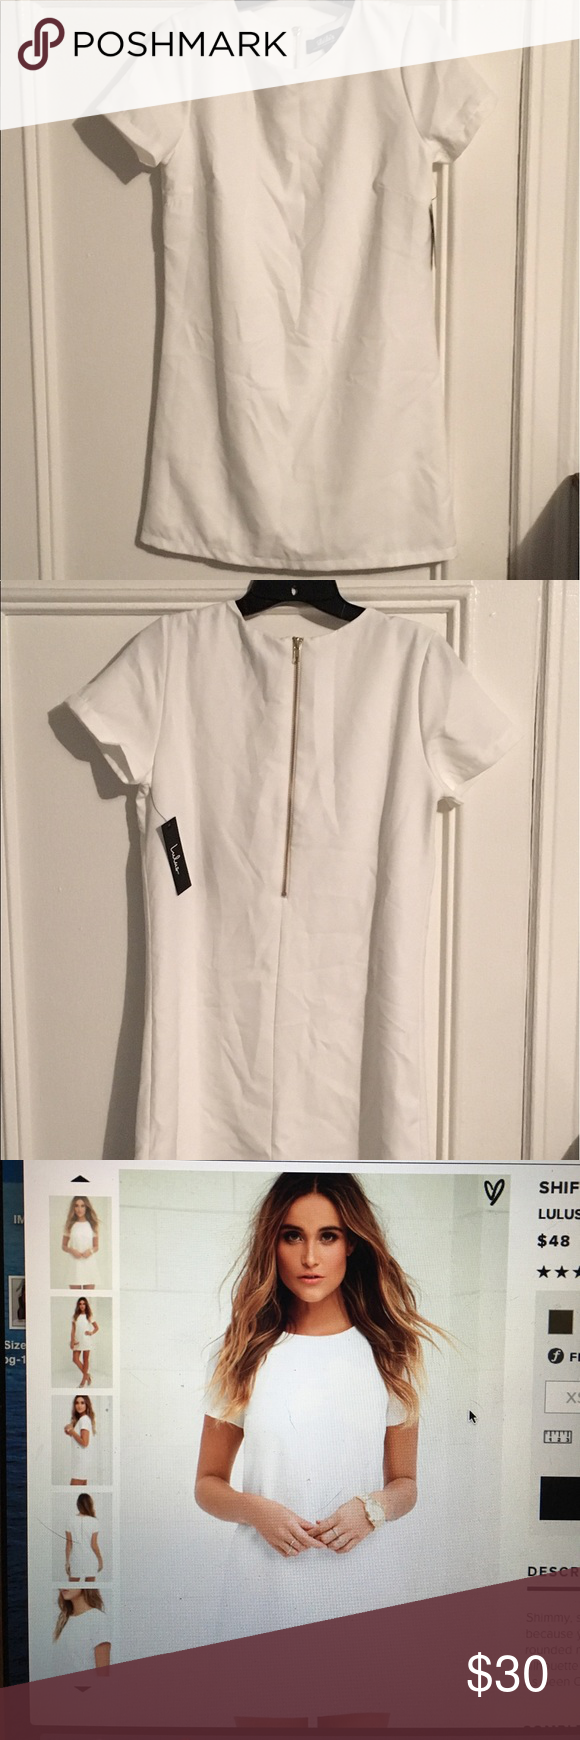 88e77e0f82840 Shift and Shout ivory Shift Dress from Lulu s Super comfortable ivory dress  from lulus. Brand new